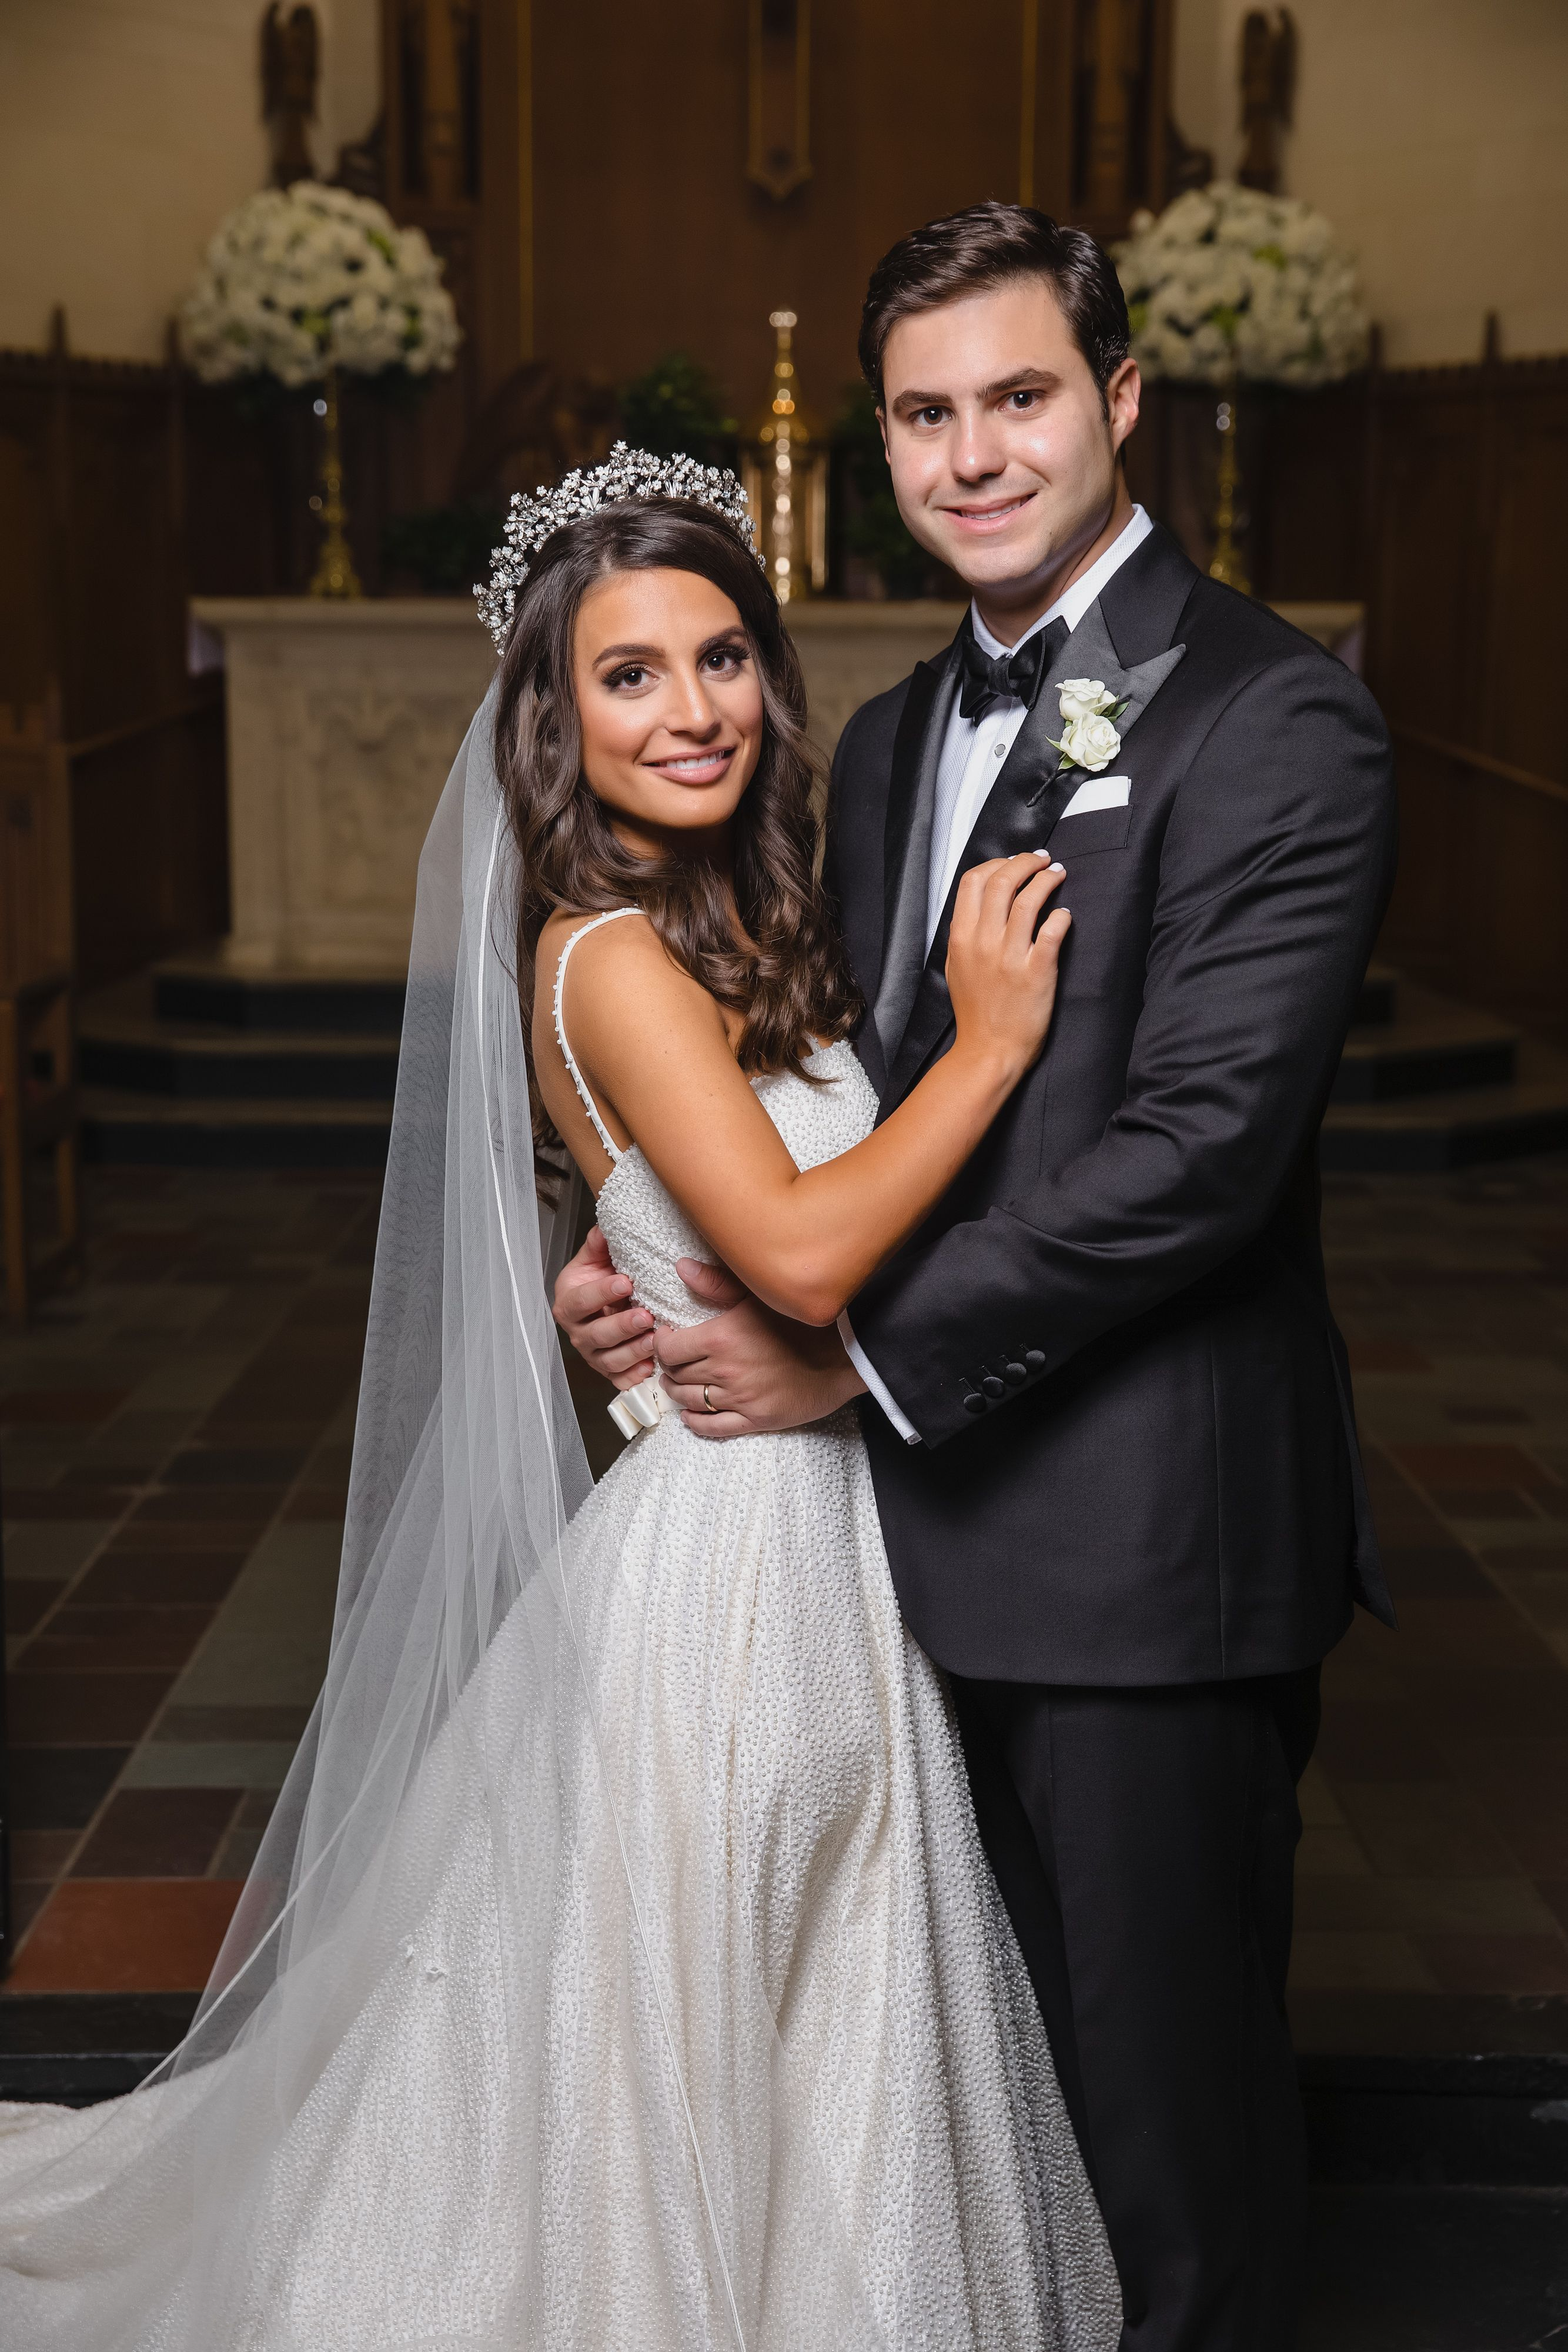 A bride, with ornate headpiece and long veil and white textured ball gown, standing groom, in all black tuxedo,  after getting married in Houston at a Catholic church.